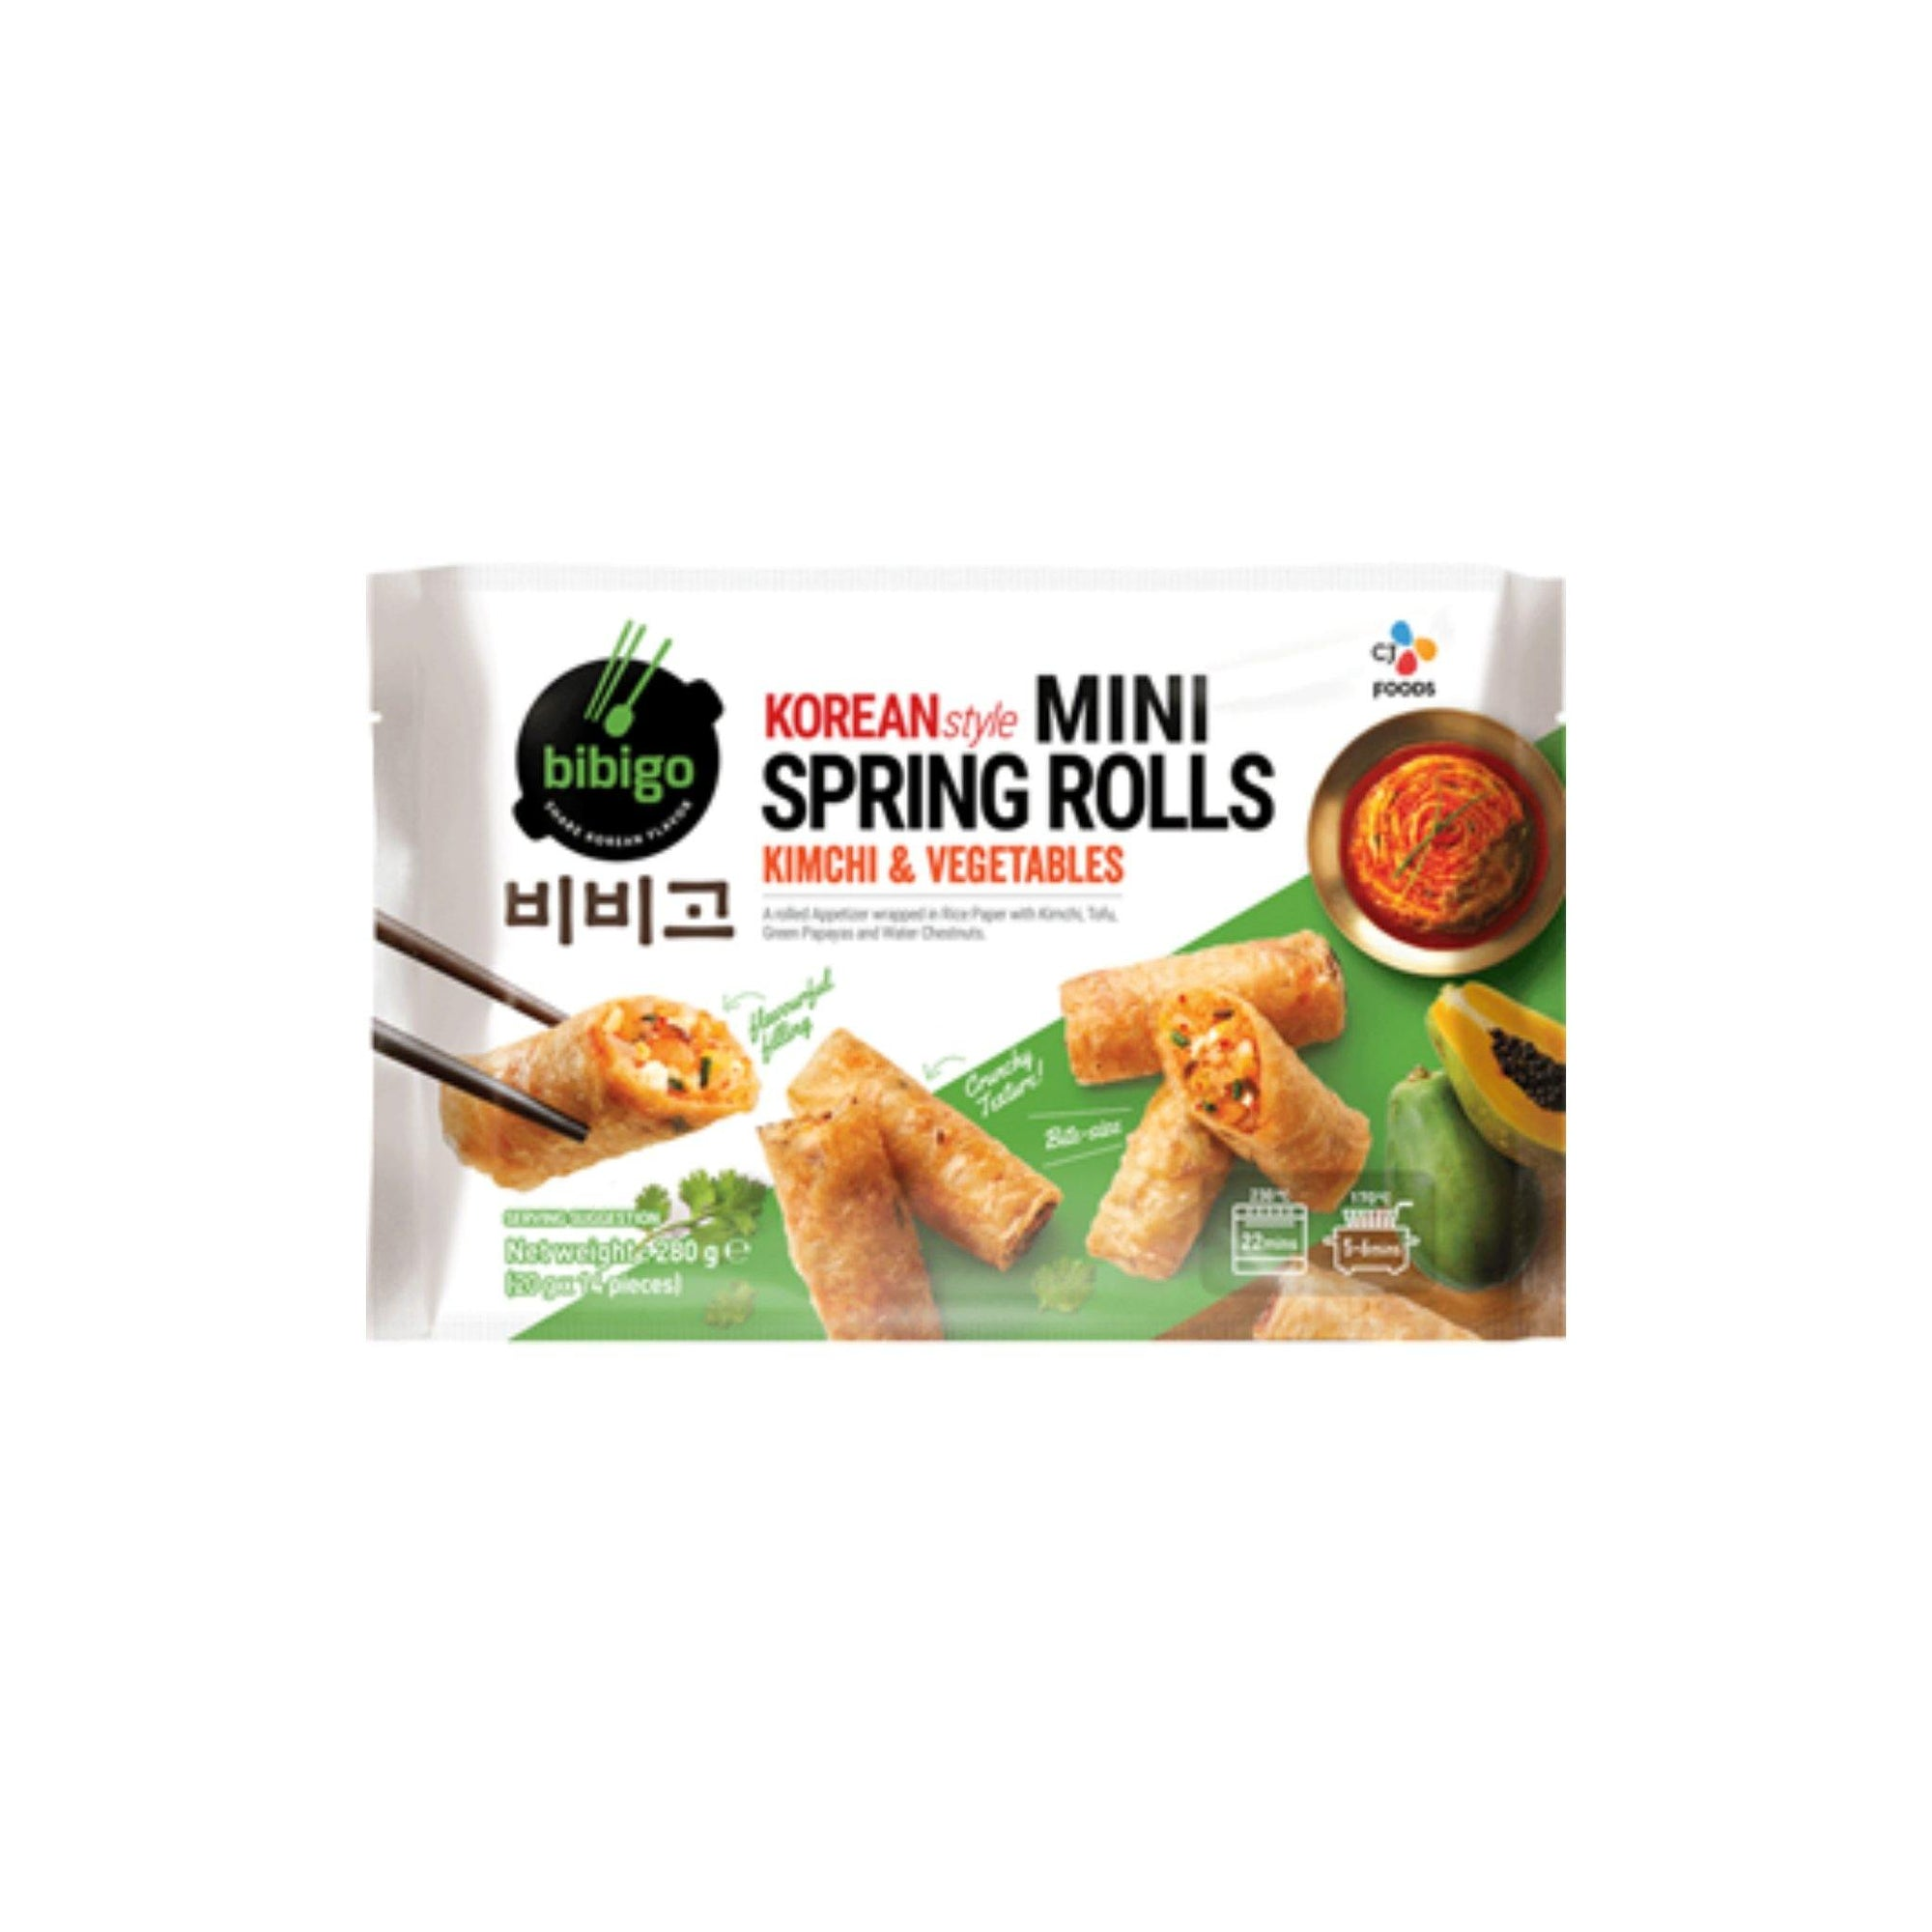 Bibigo Kimchi and Veg Spring Roll 280G - Asian Harvest